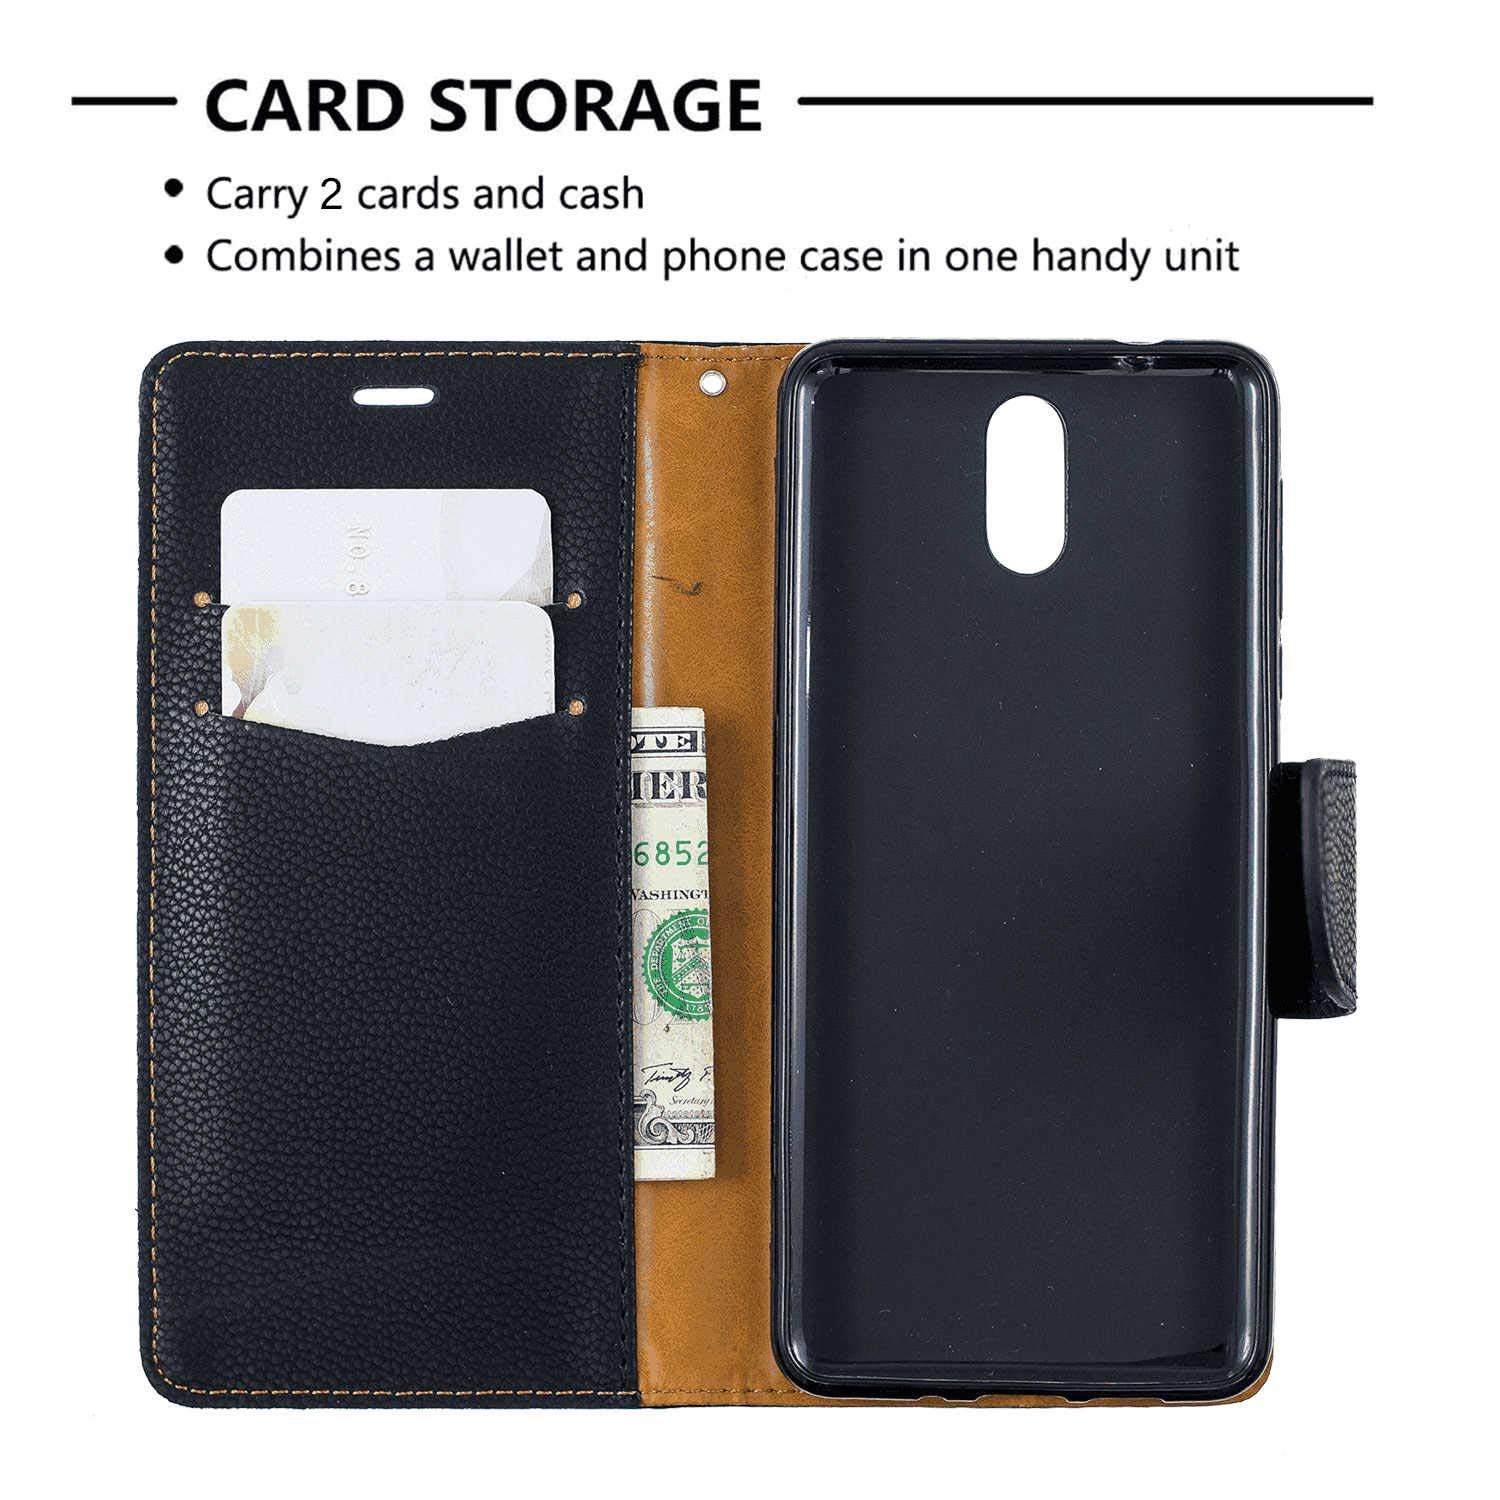 Cover for iPhone Xs Leather Kickstand Mobile Phone Cover Extra-Shockproof Business Card Holders with Free Waterproof-Bag Absorbing iPhone Xs Flip Case